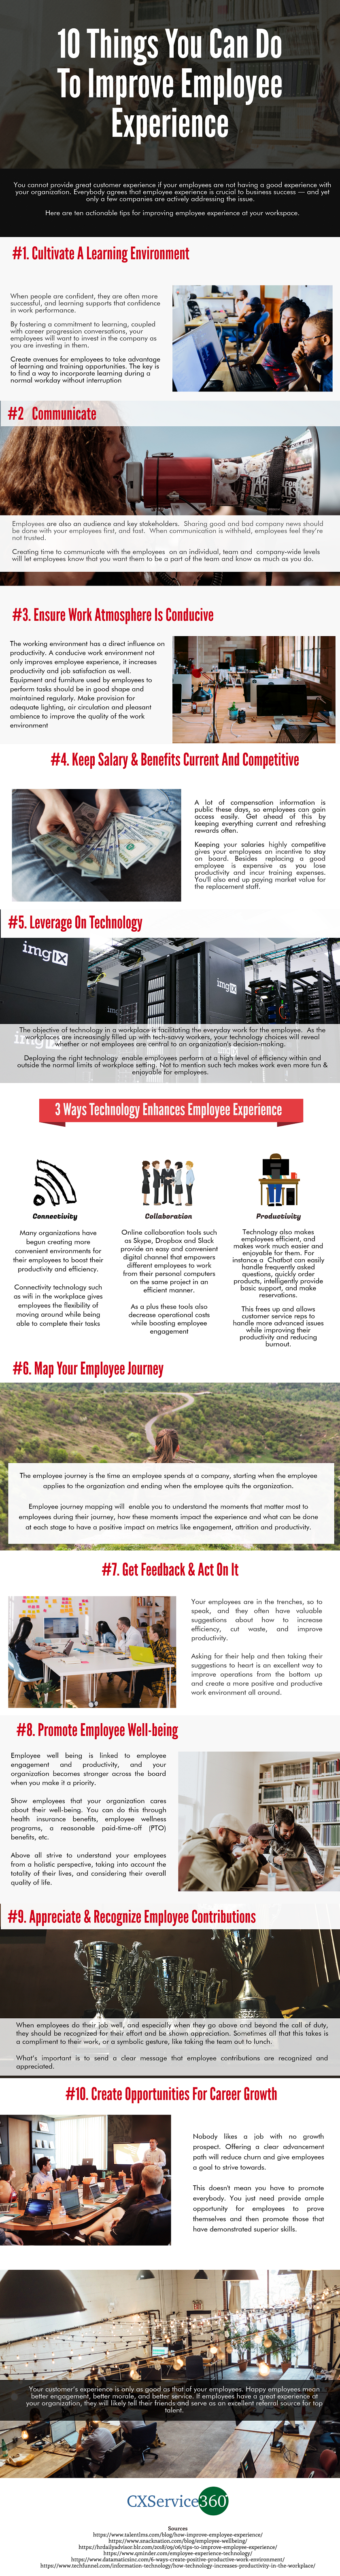 Infographic - Improve Employee Experience